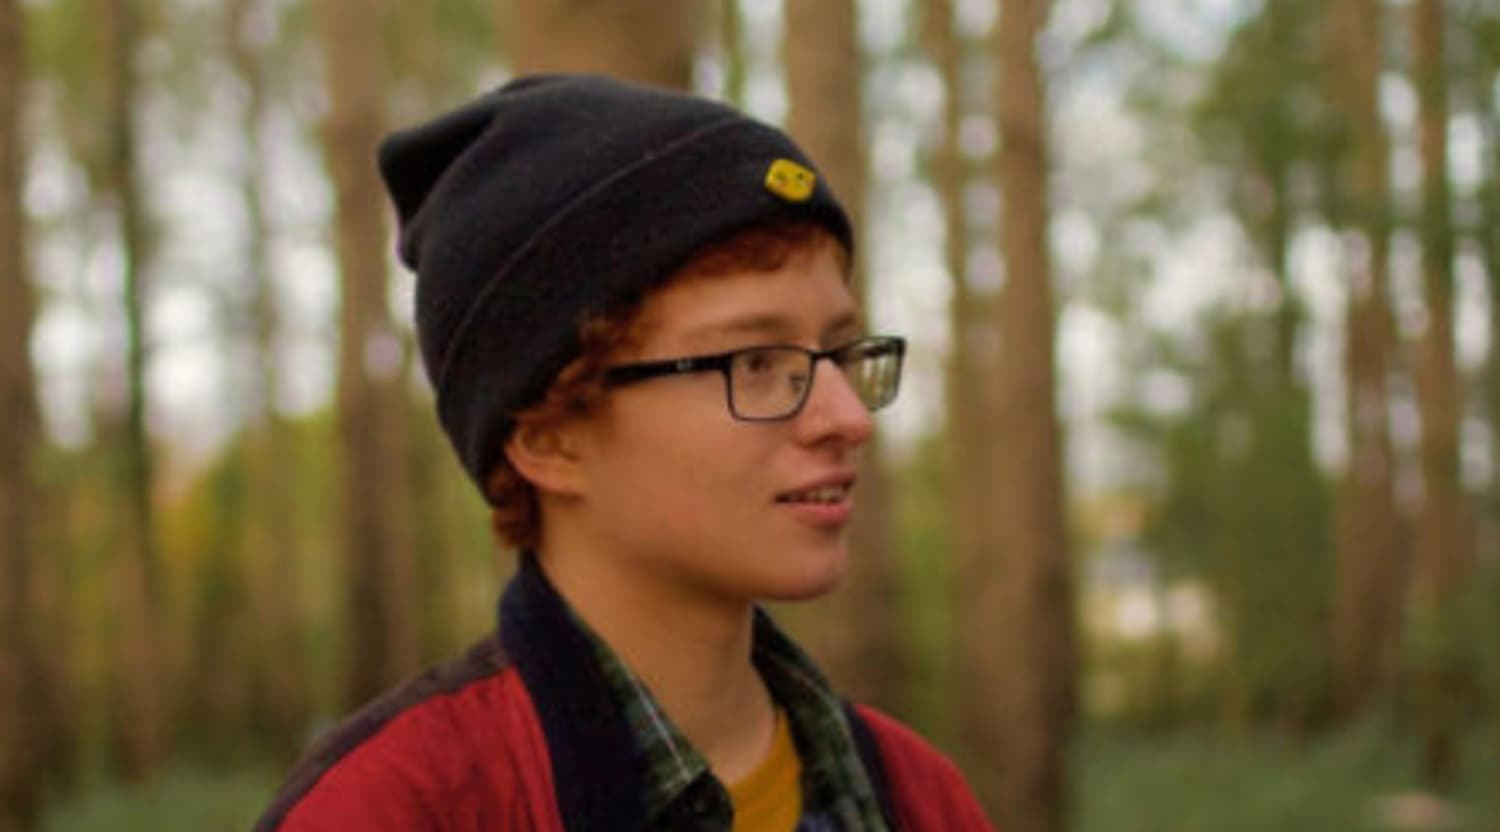 Cavetown Tickets - Cavetown Concert Tickets and Tour Dates